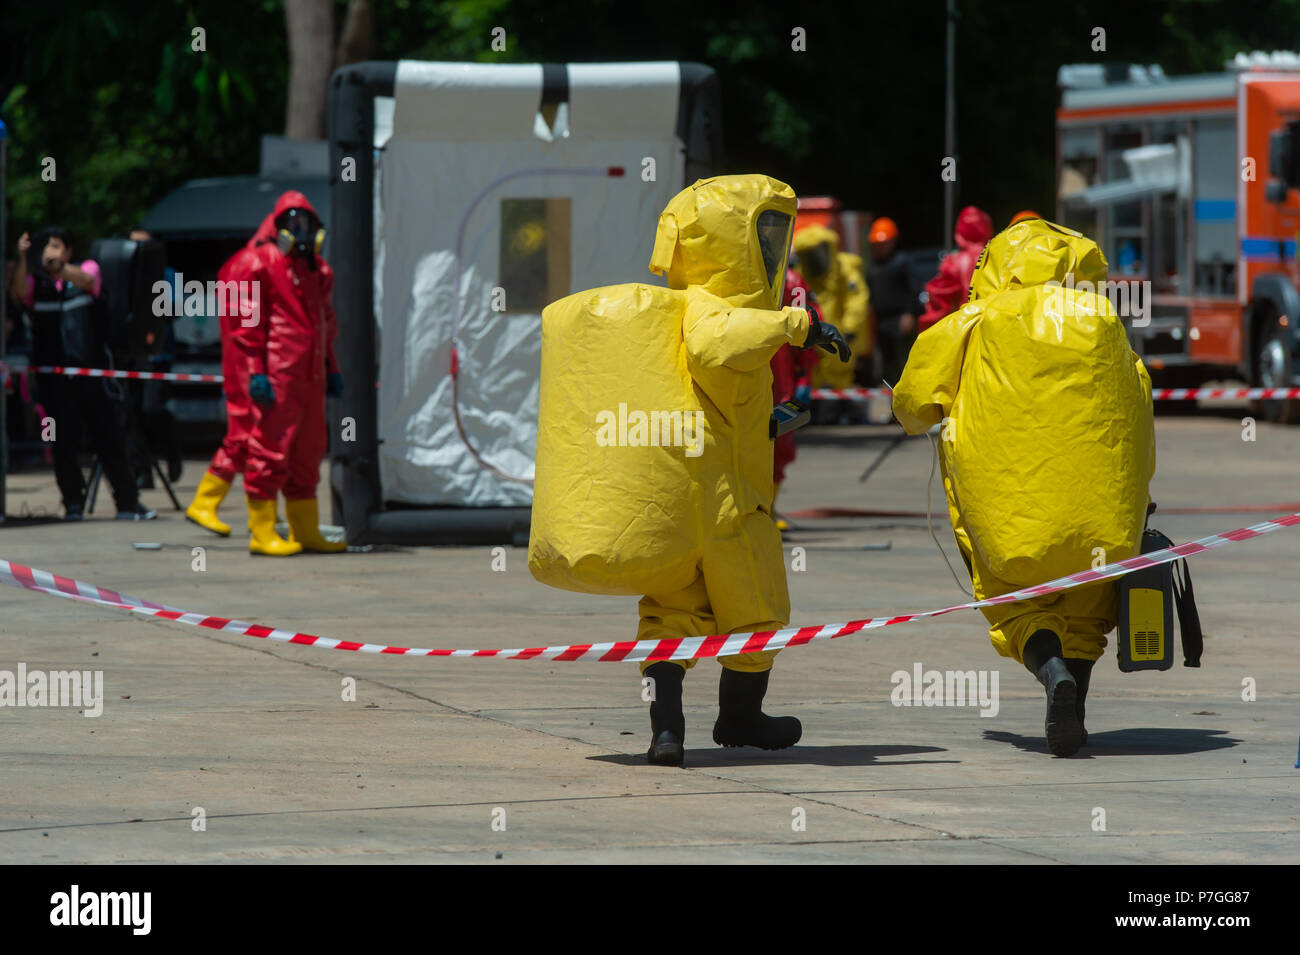 Fireman and hazard protection suit - Stock Image